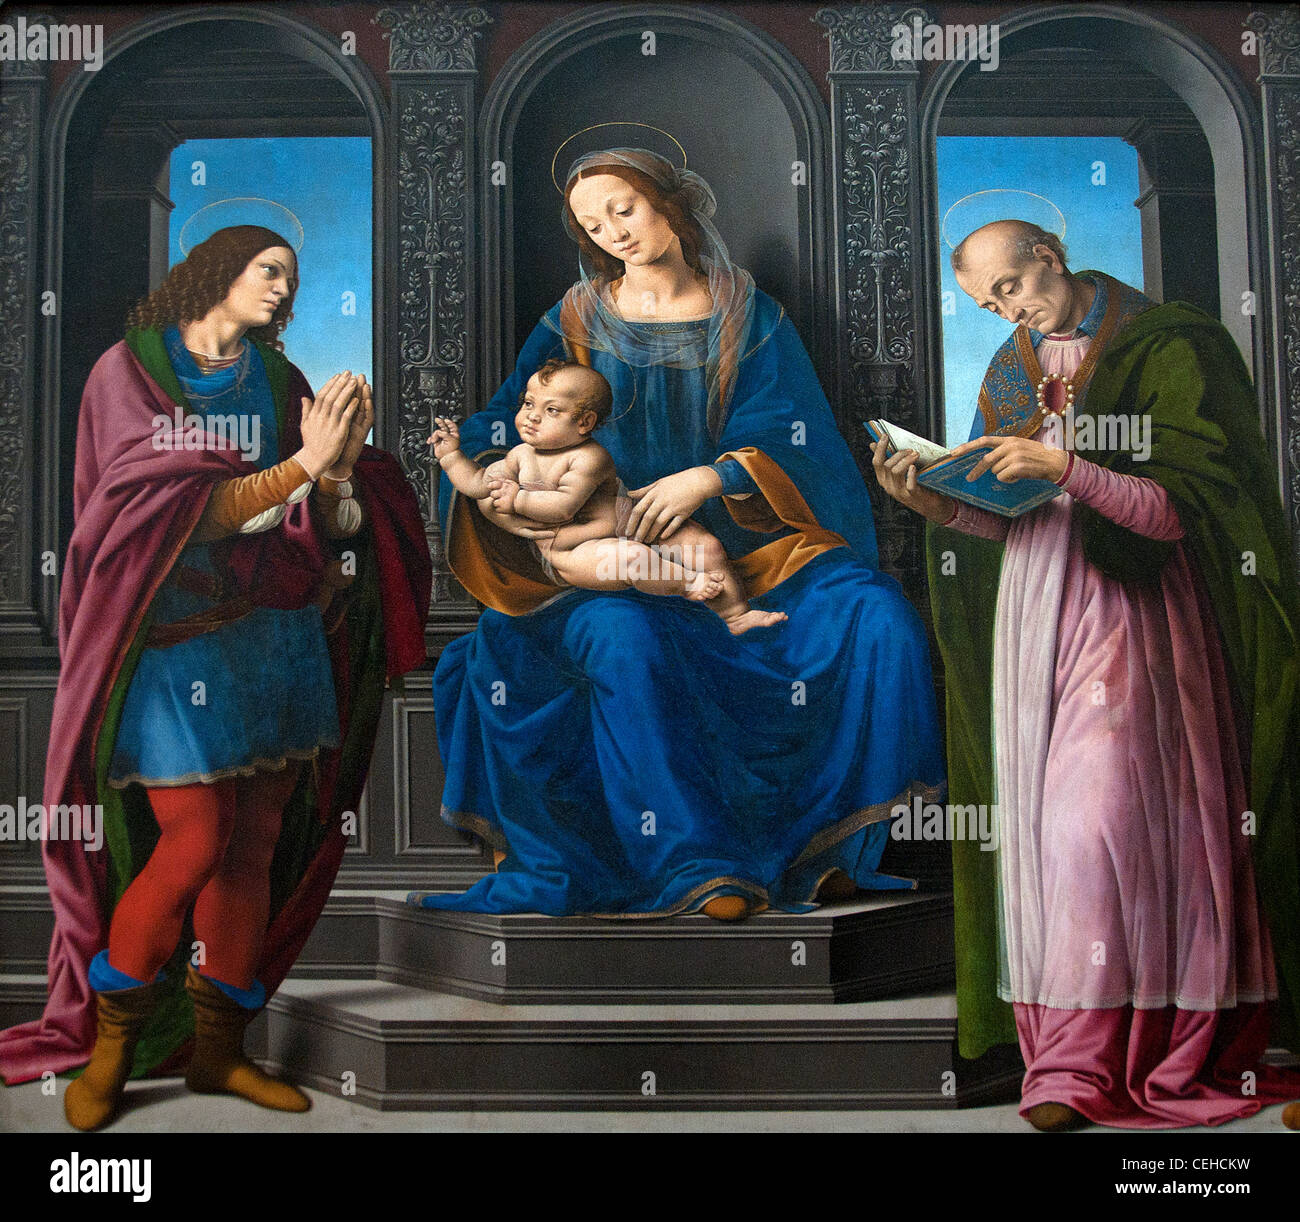 The Virgin and Child between St. Julien and Nicolas of Myra 1494 by Lorenzo di Credi Italy Italian - Stock Image